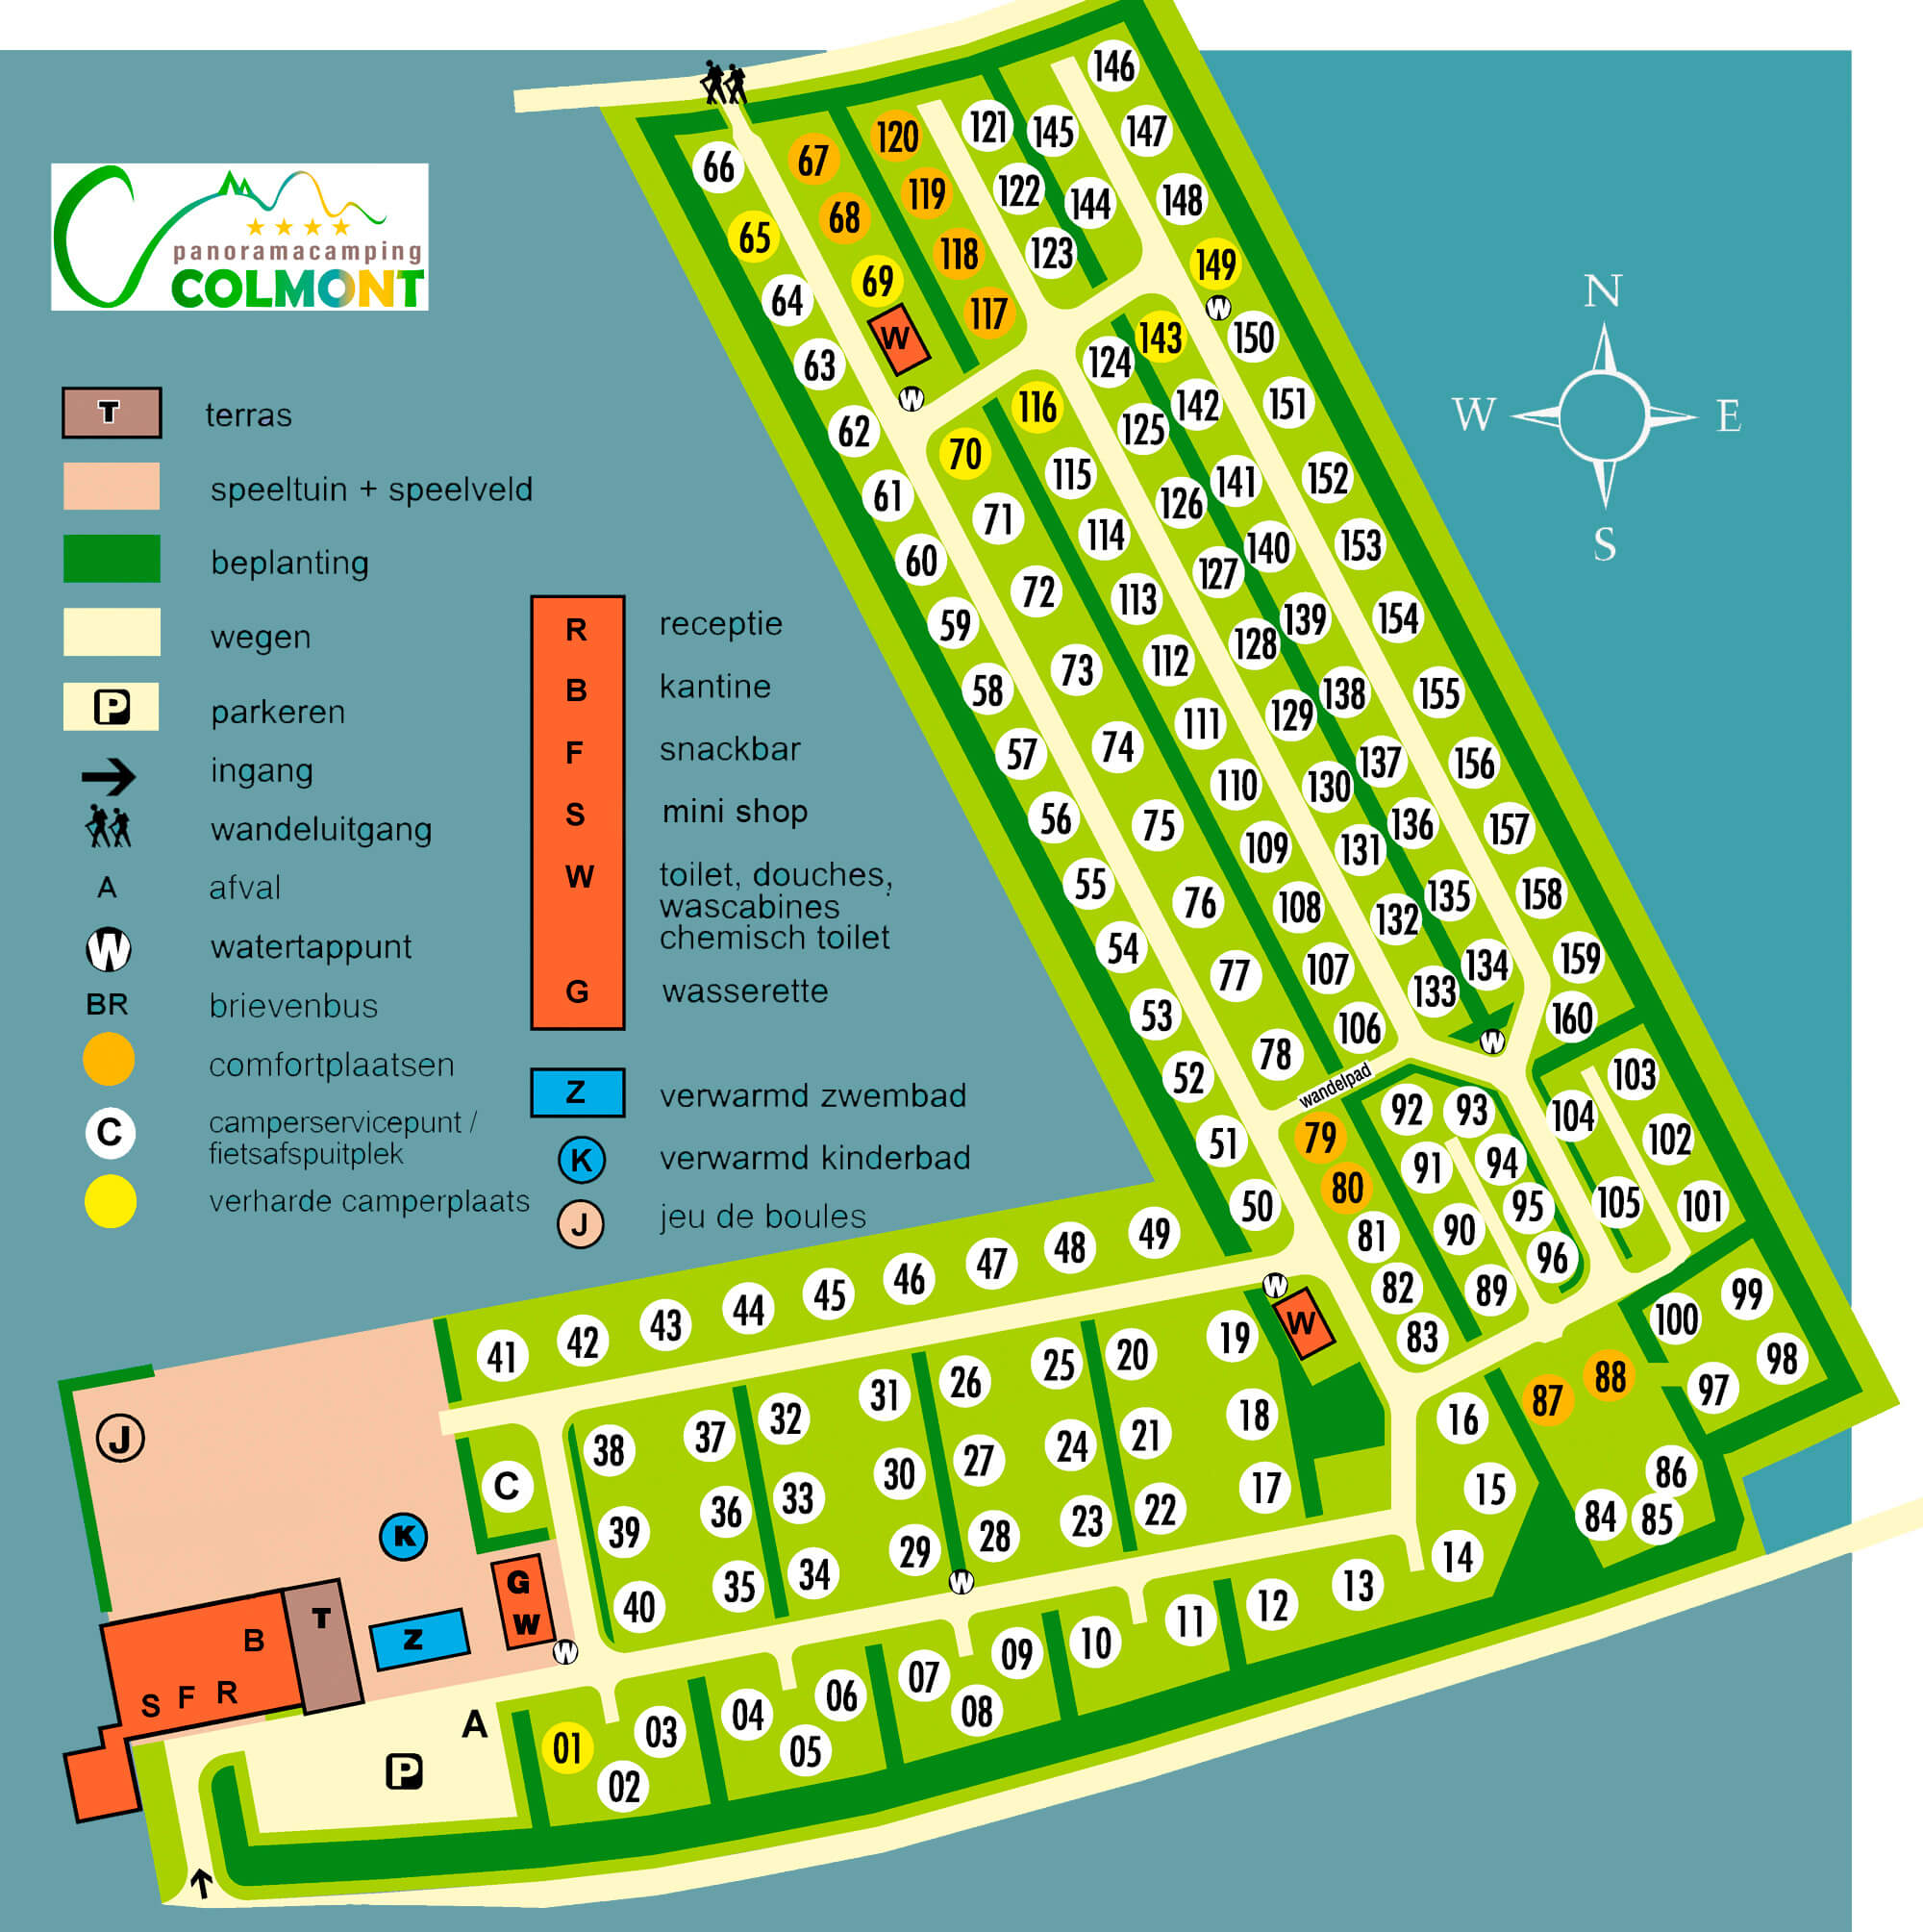 Plattegrond Panoramacamping Colmont